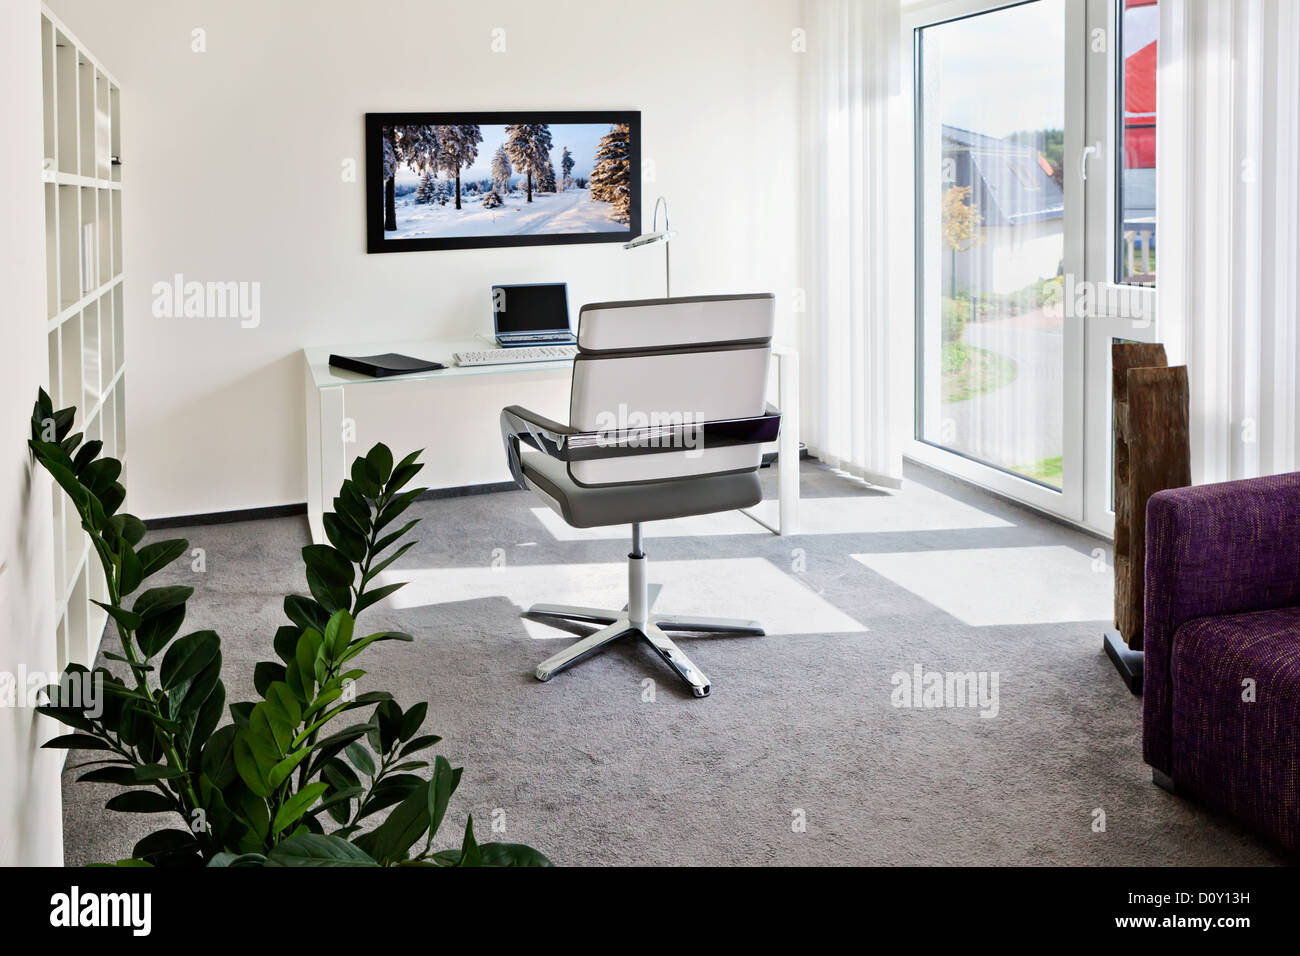 Modern interior of home office - Stock Image